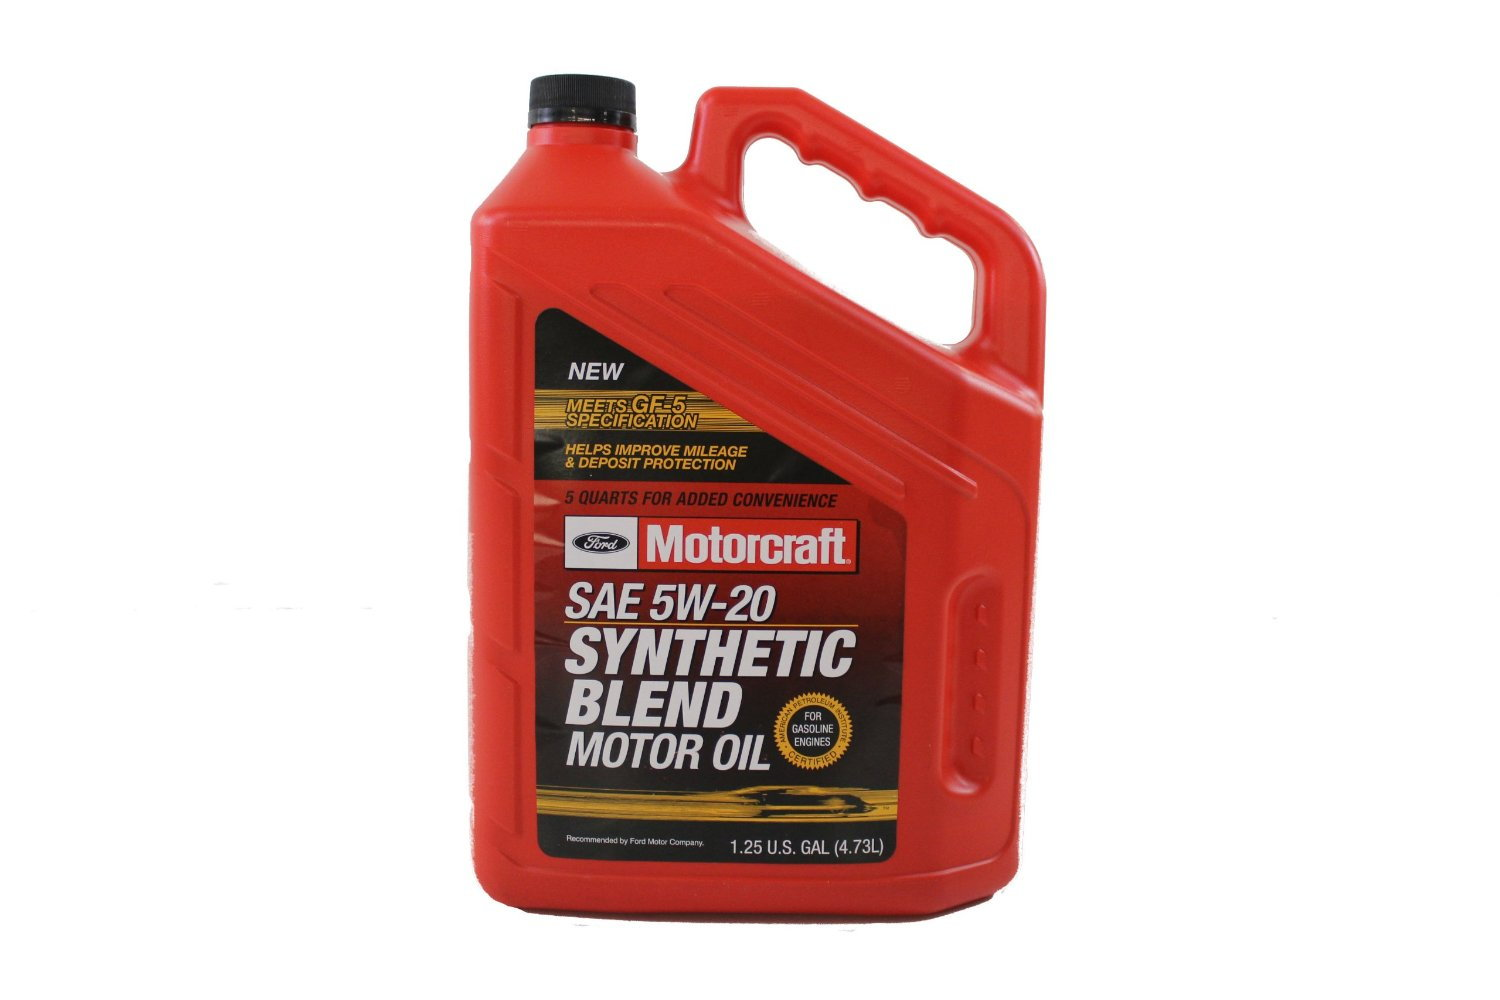 Ford f150 f250 how to choose the right oil ford trucks for Motor oil for ford f150